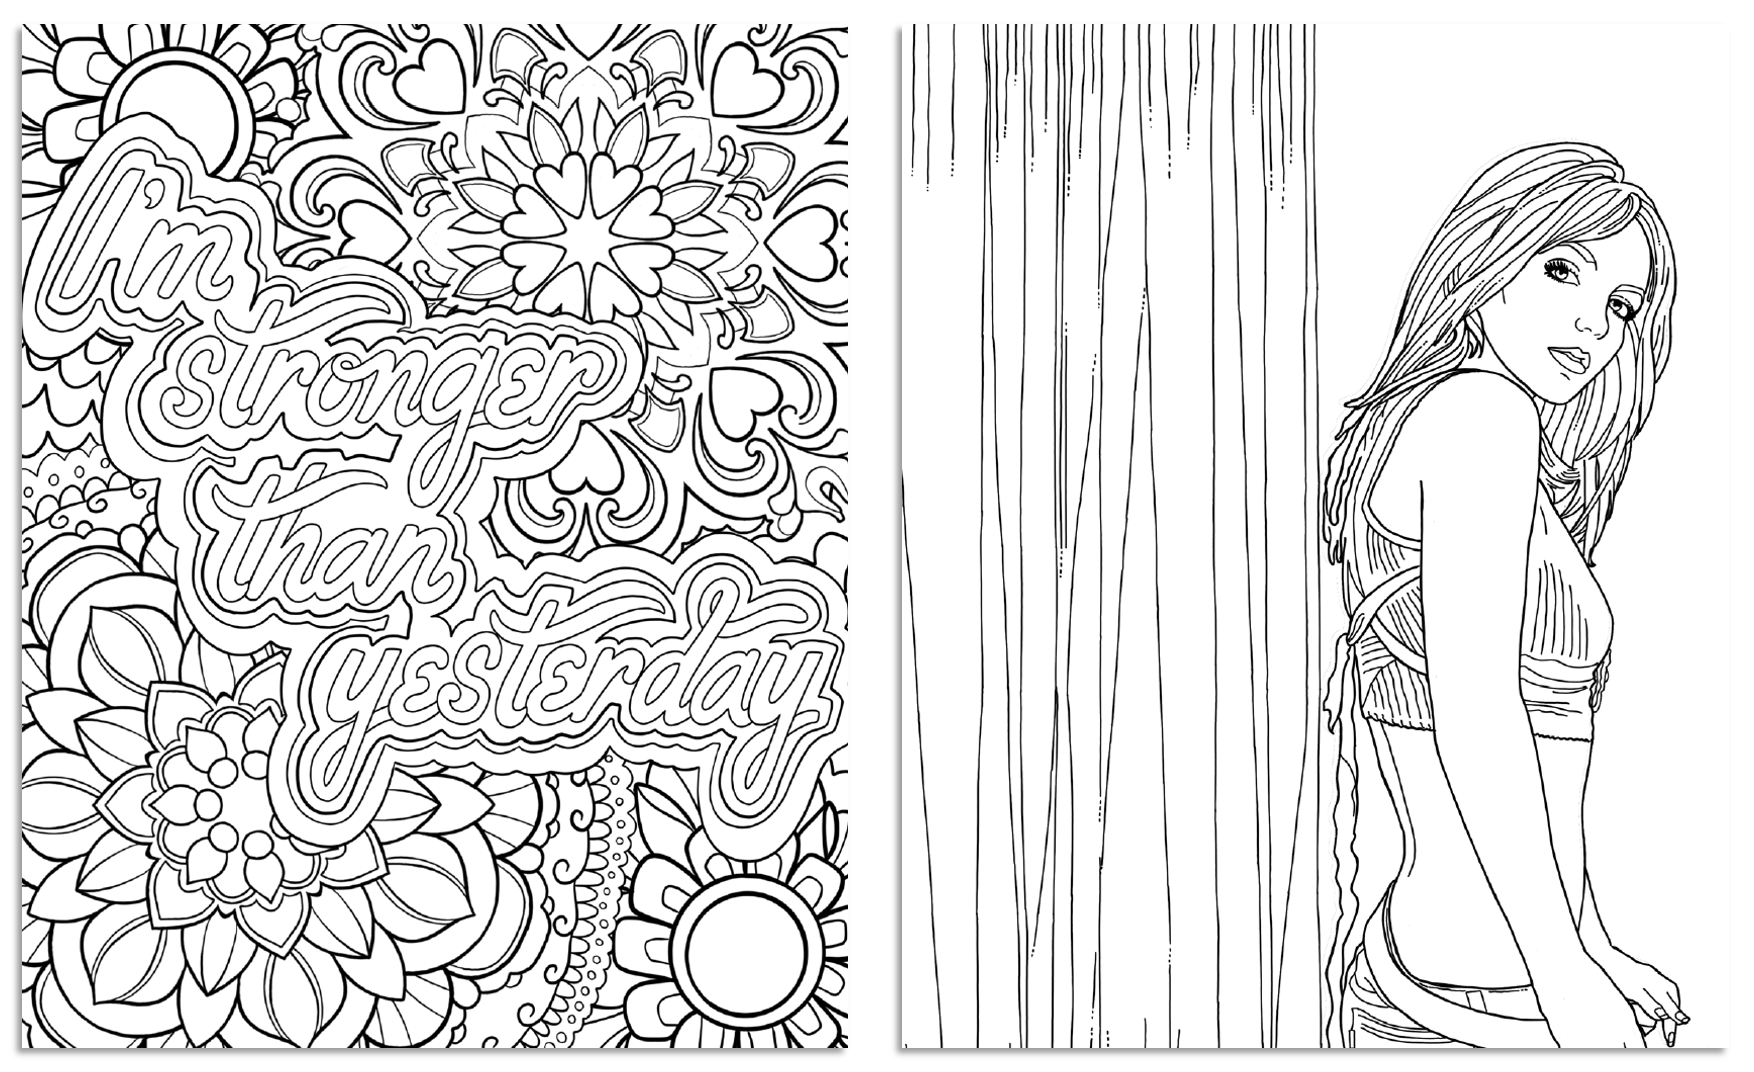 Britney Spears Coloring Book Samples